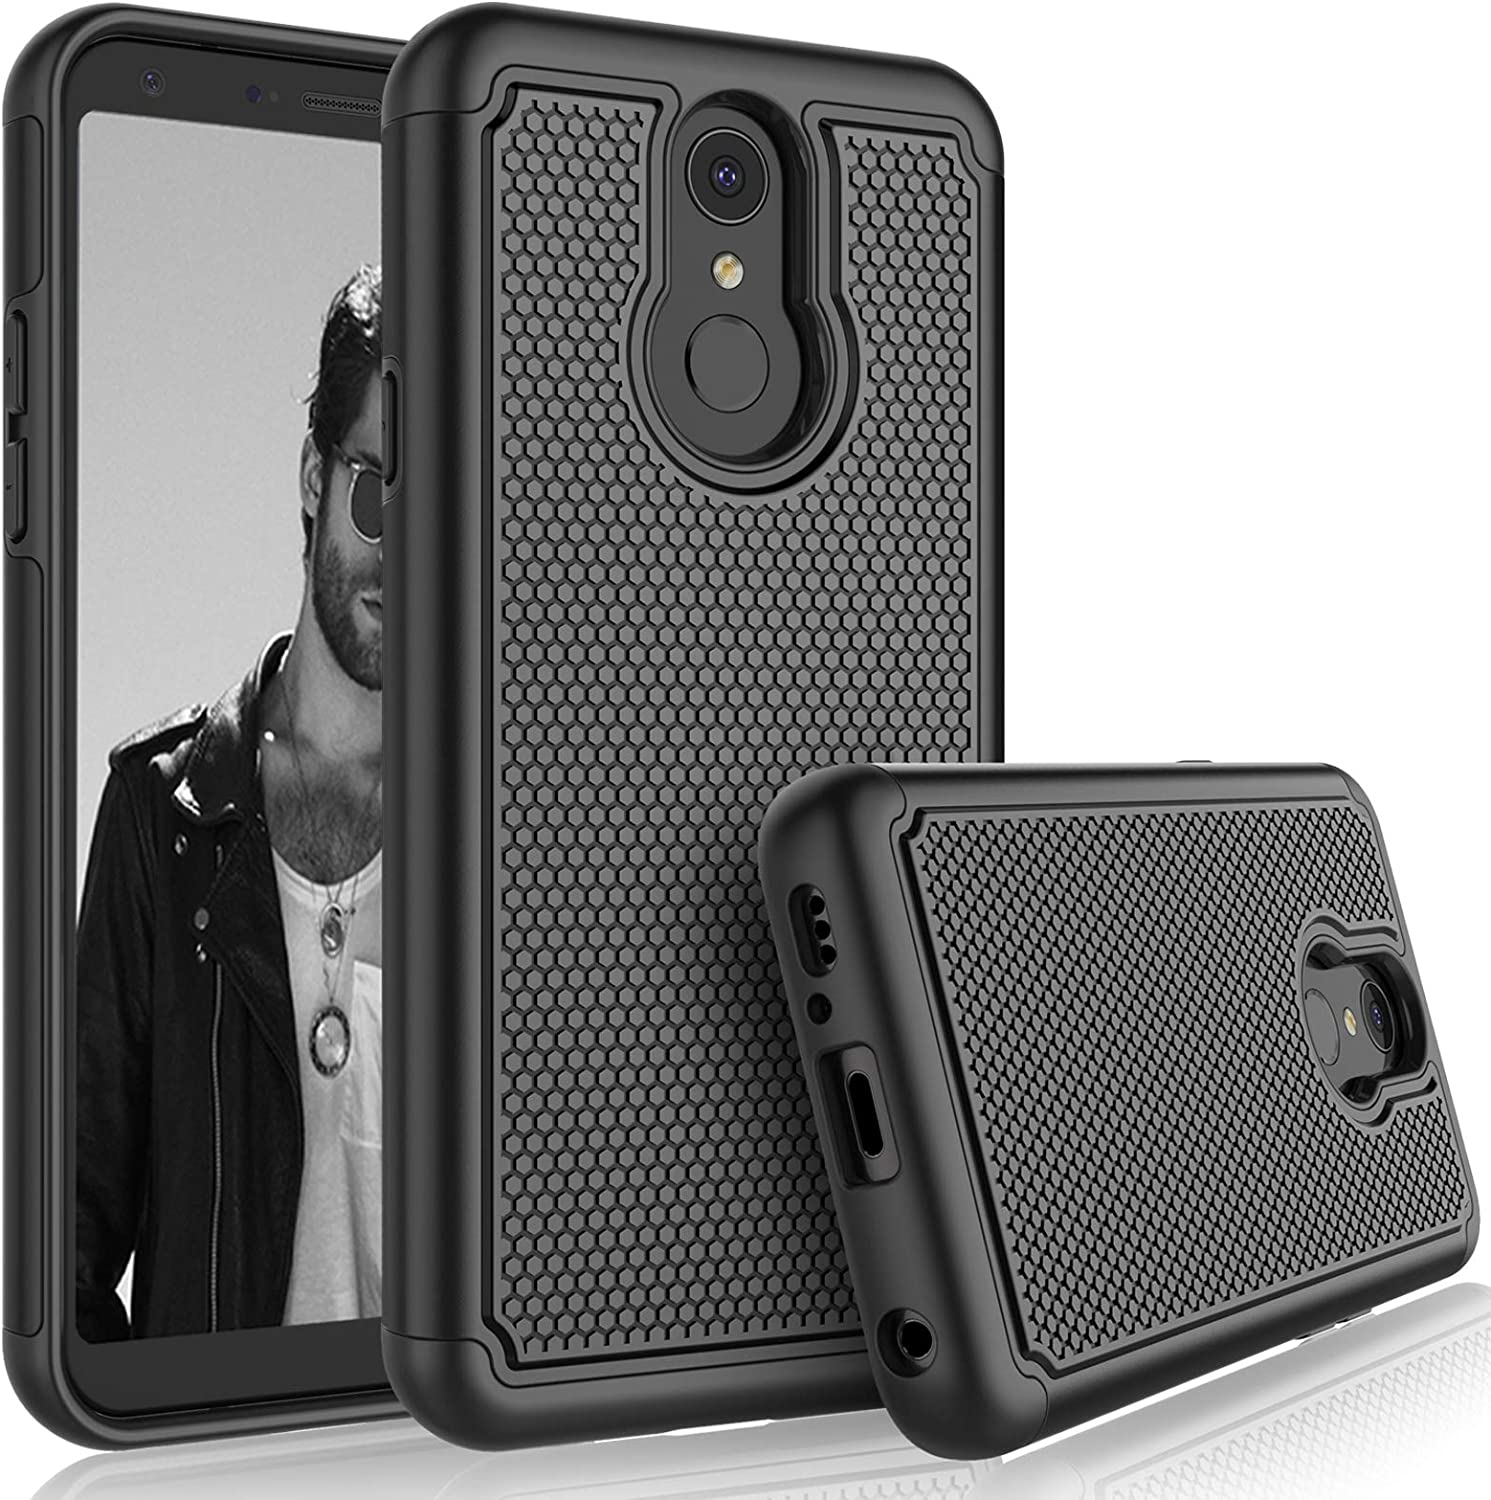 LG Q7 Case, LG Q7 Plus/LG Q7+ Sturdy Case, [Tmajor] Shock Absorbing [Black] Rubber Silicone & Plastic Scratch Resistant Rugged Bumper Cute Grip Solid Hard Phone Cases Cover